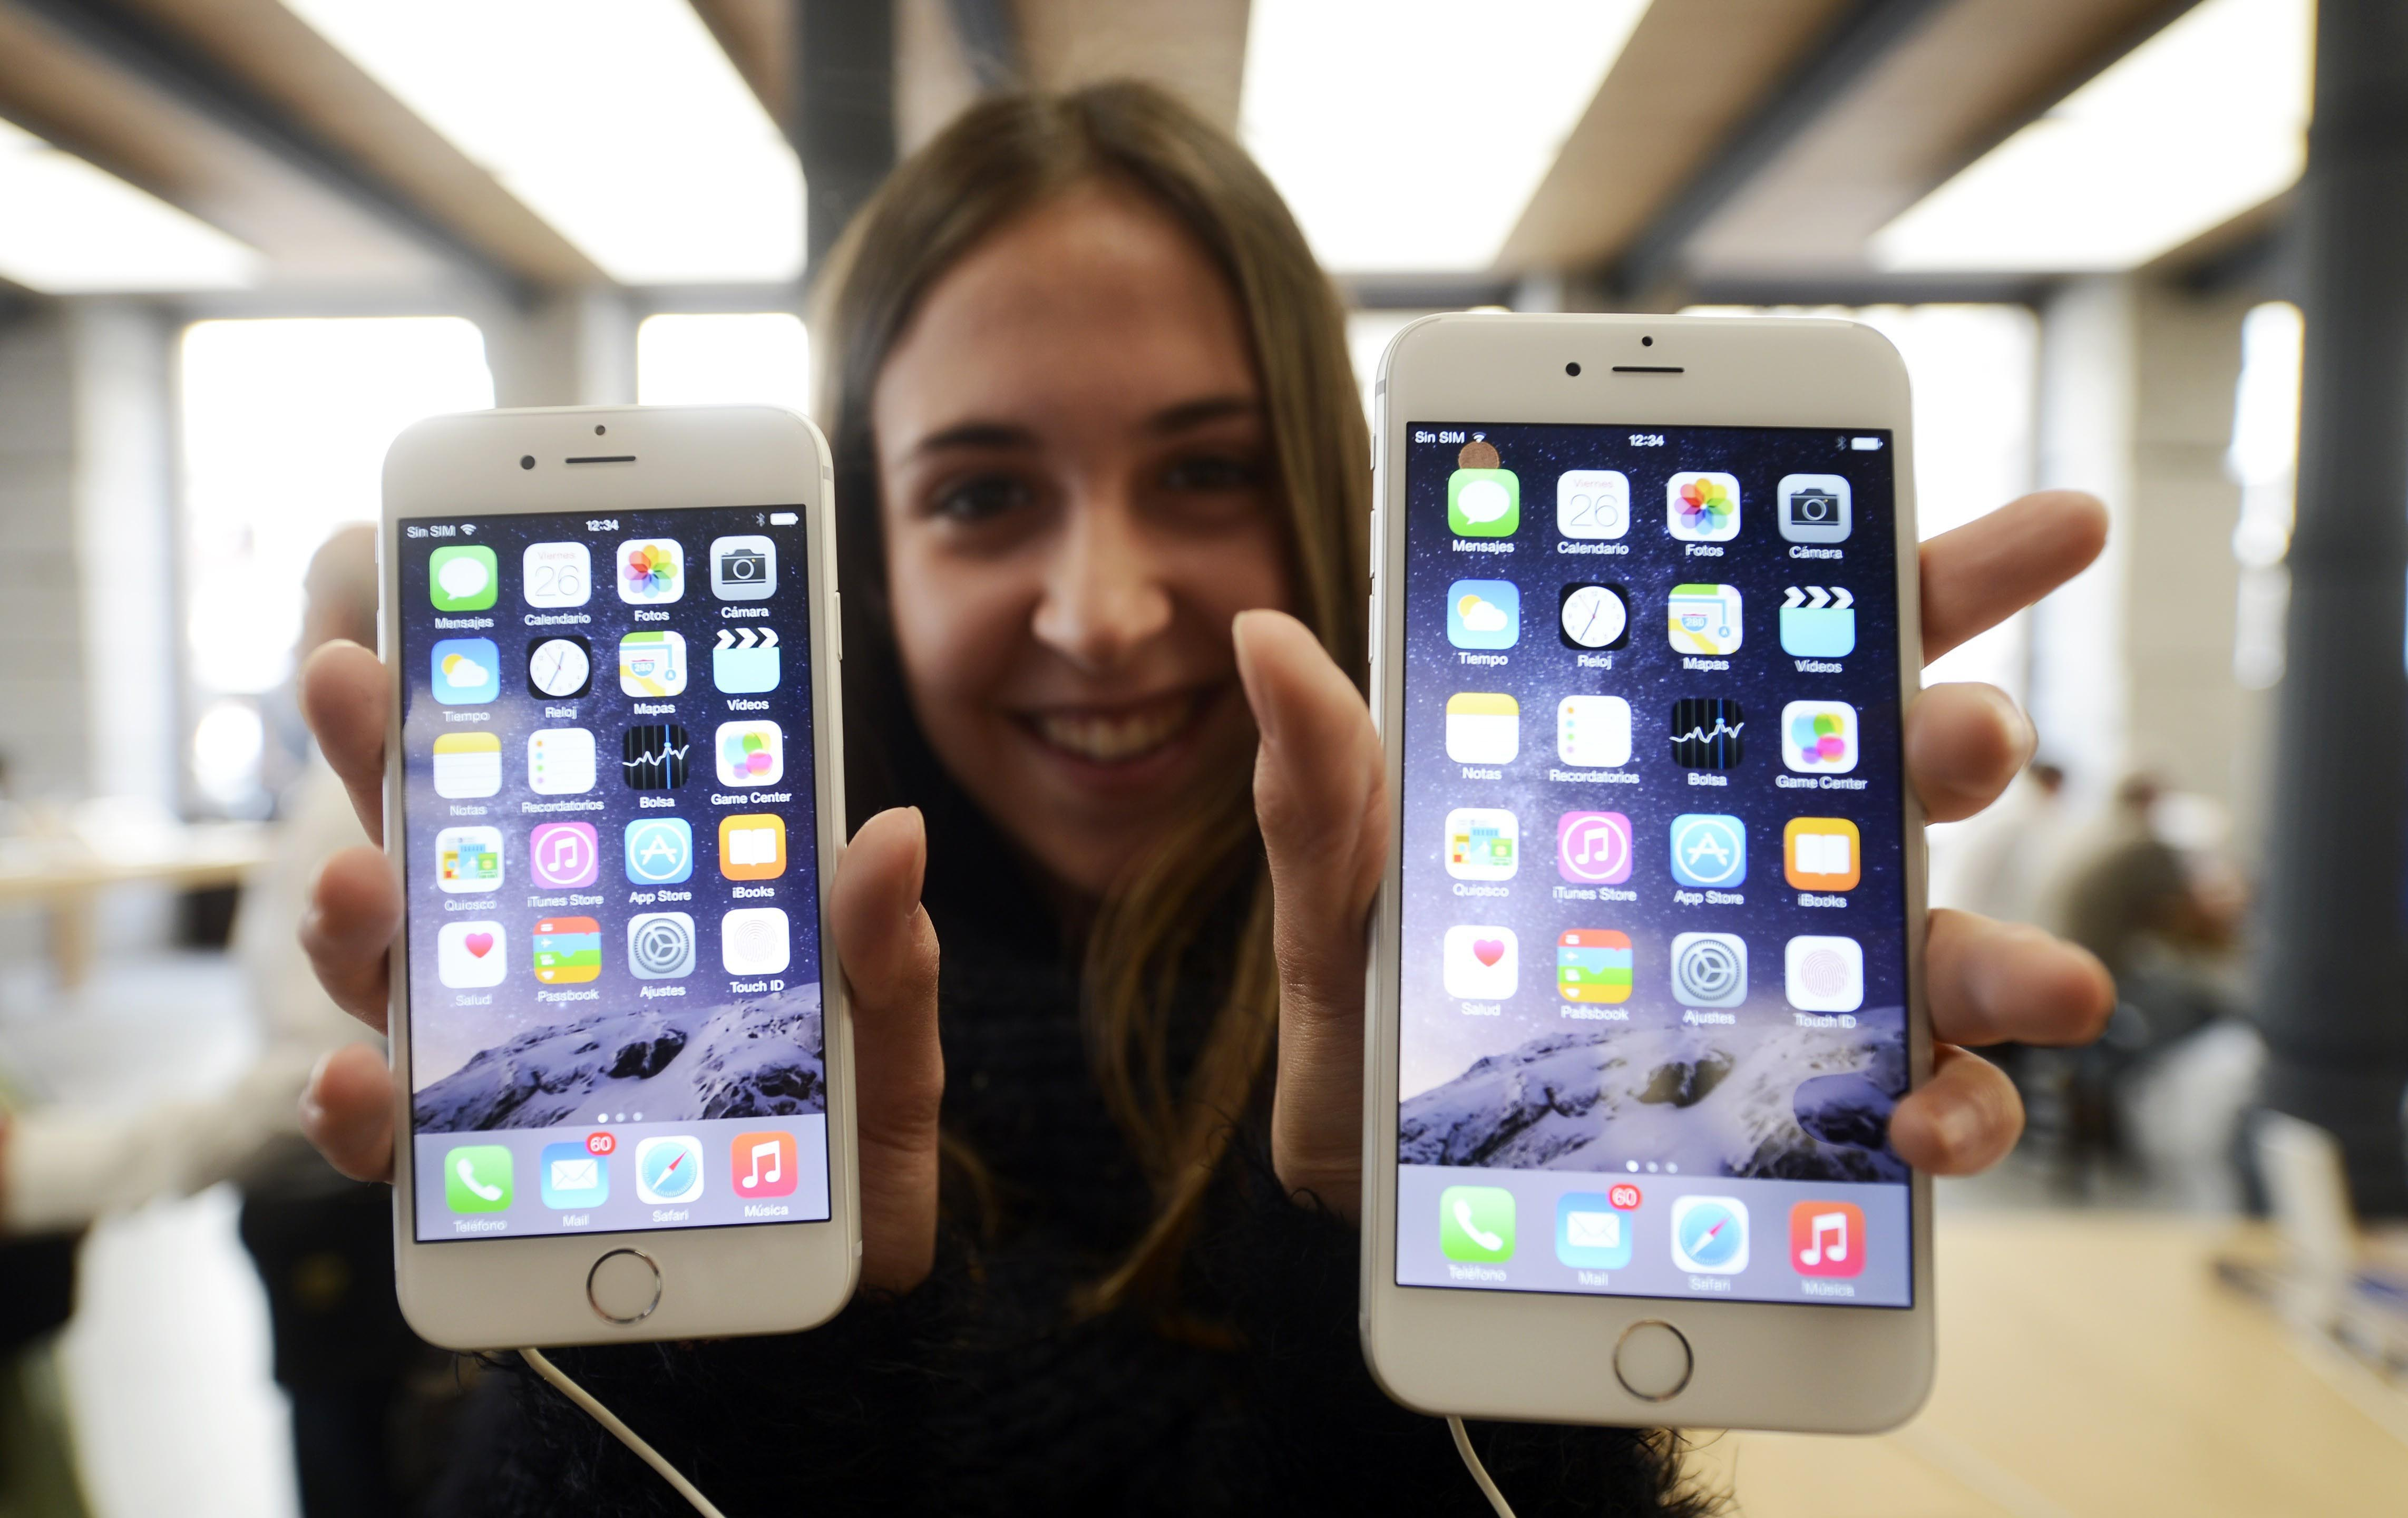 A customer shows the new products of Apple, iPhone 6 and iPhone 6 Plus, at an Apple Store in Madrid, Spain, on September 26, 2014.